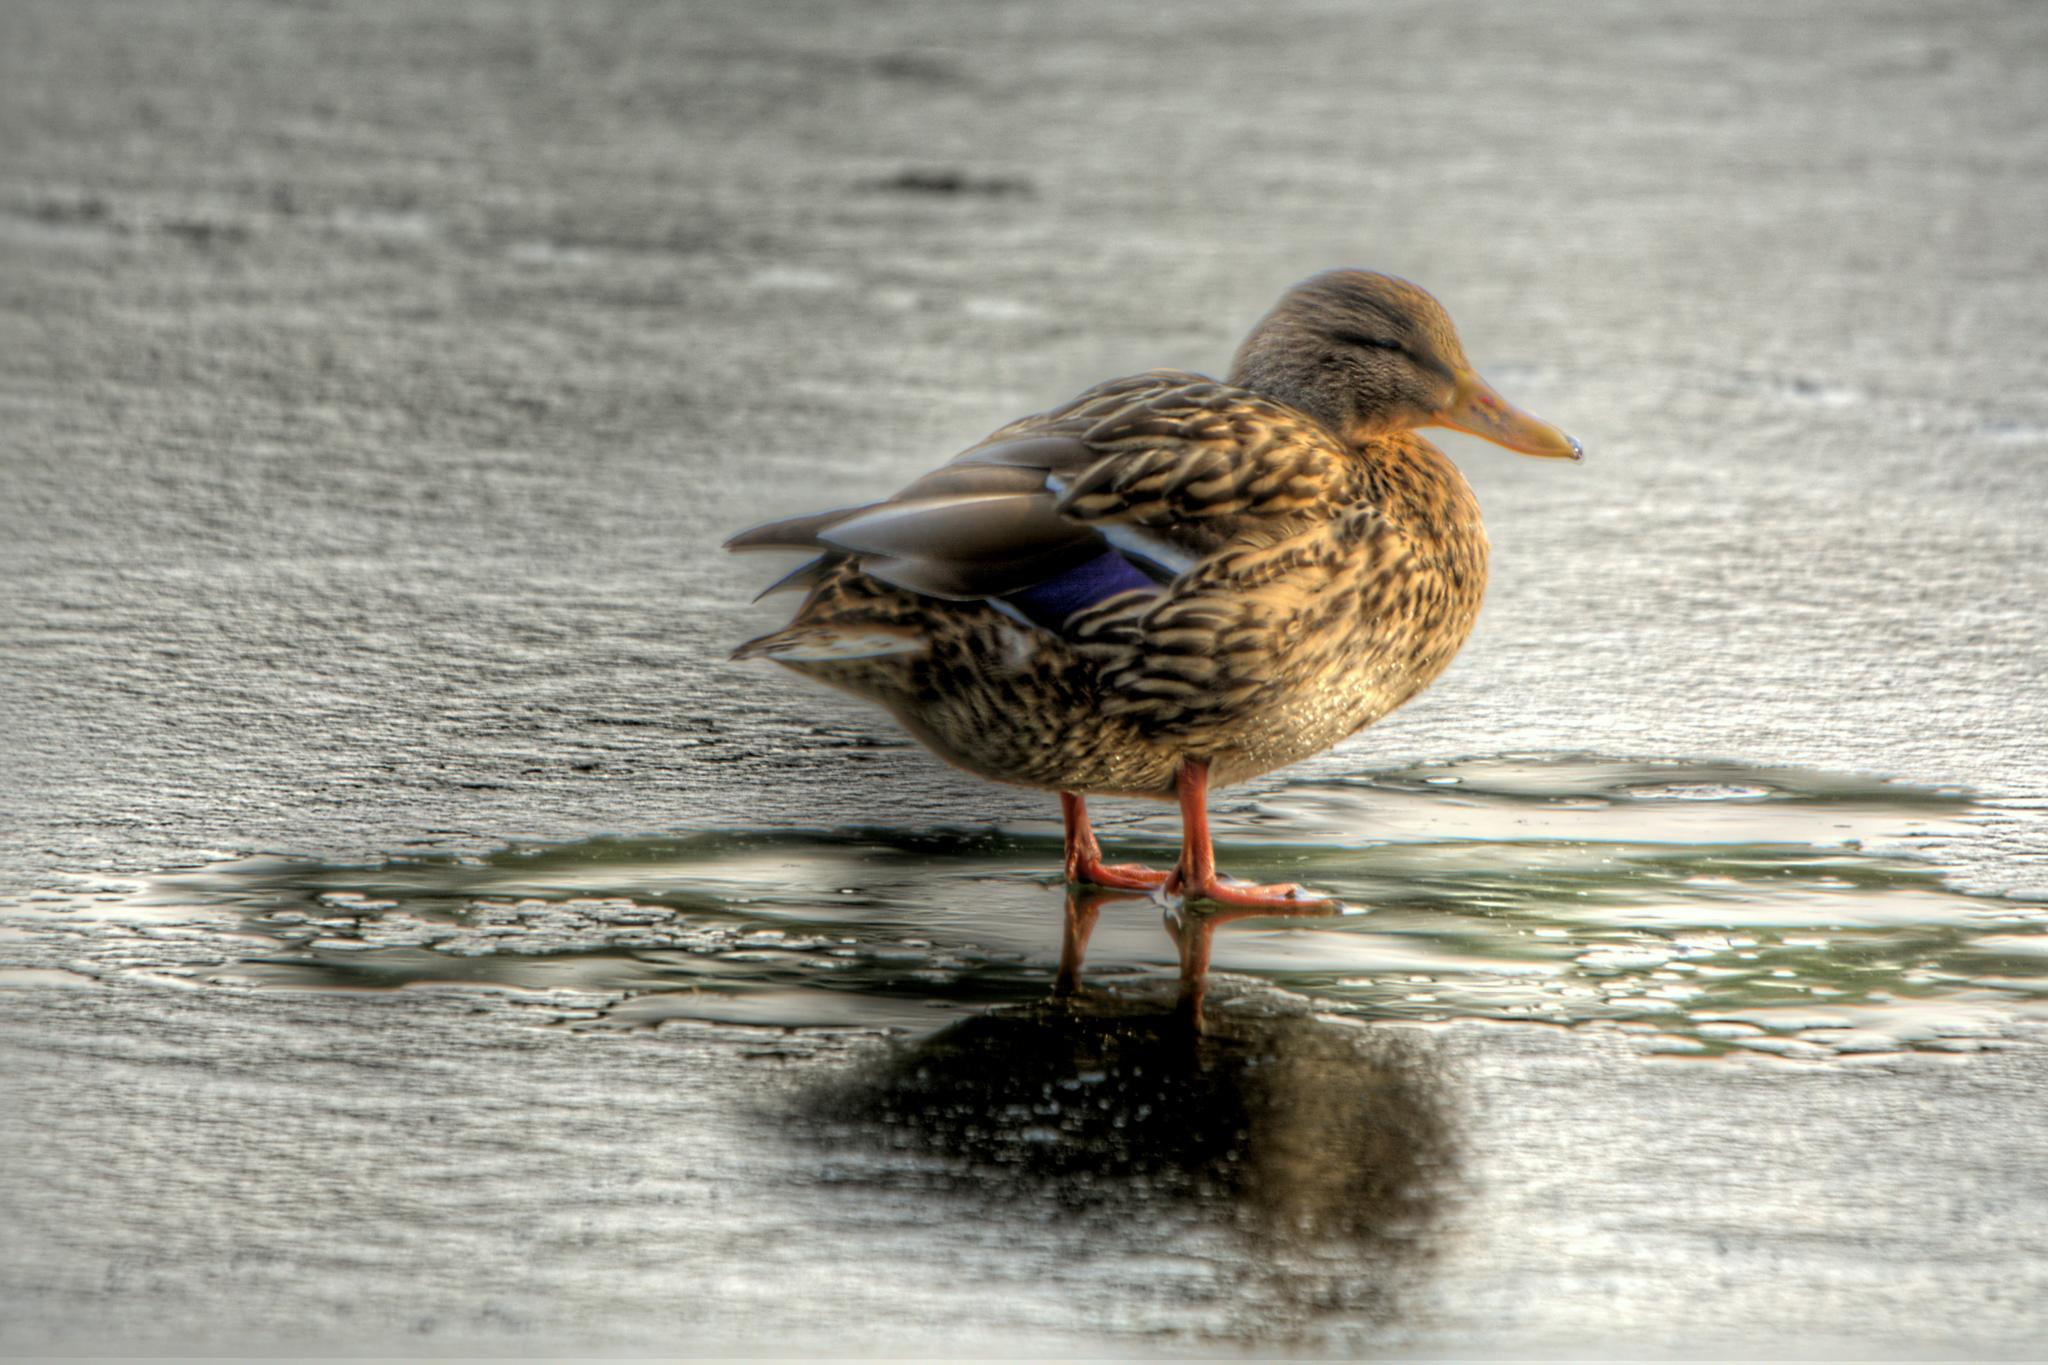 Duck on thin ice by Nic Piégsa